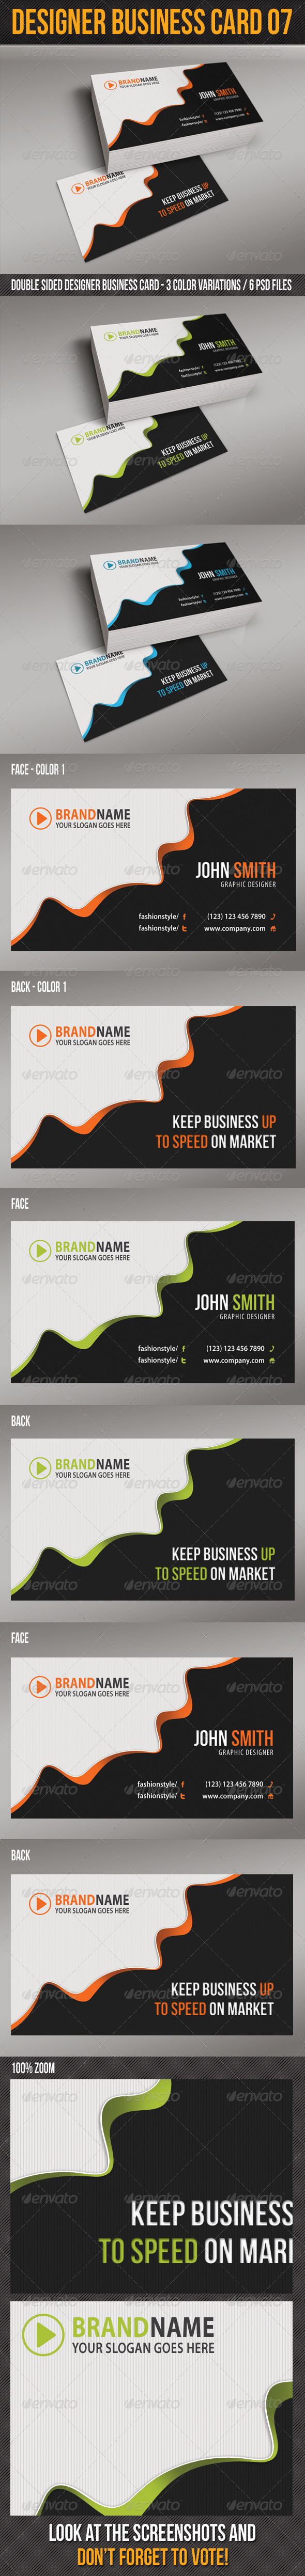 Designer Business Card 07